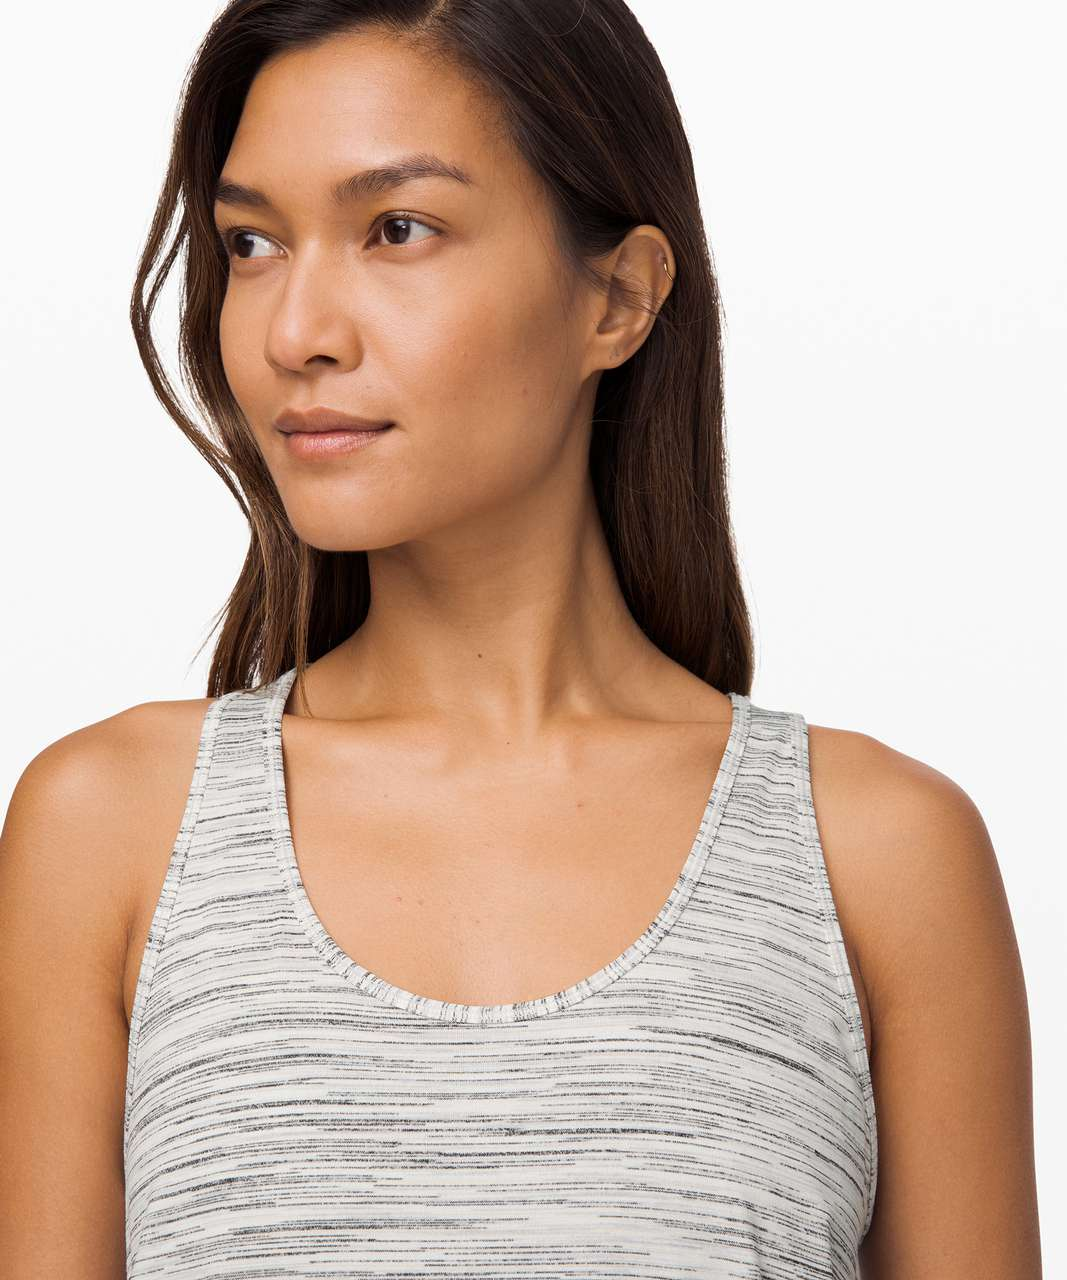 Lululemon Essential Tank Pleated *Seriously Light Luon - Space Dye Camo White Silver Spoon